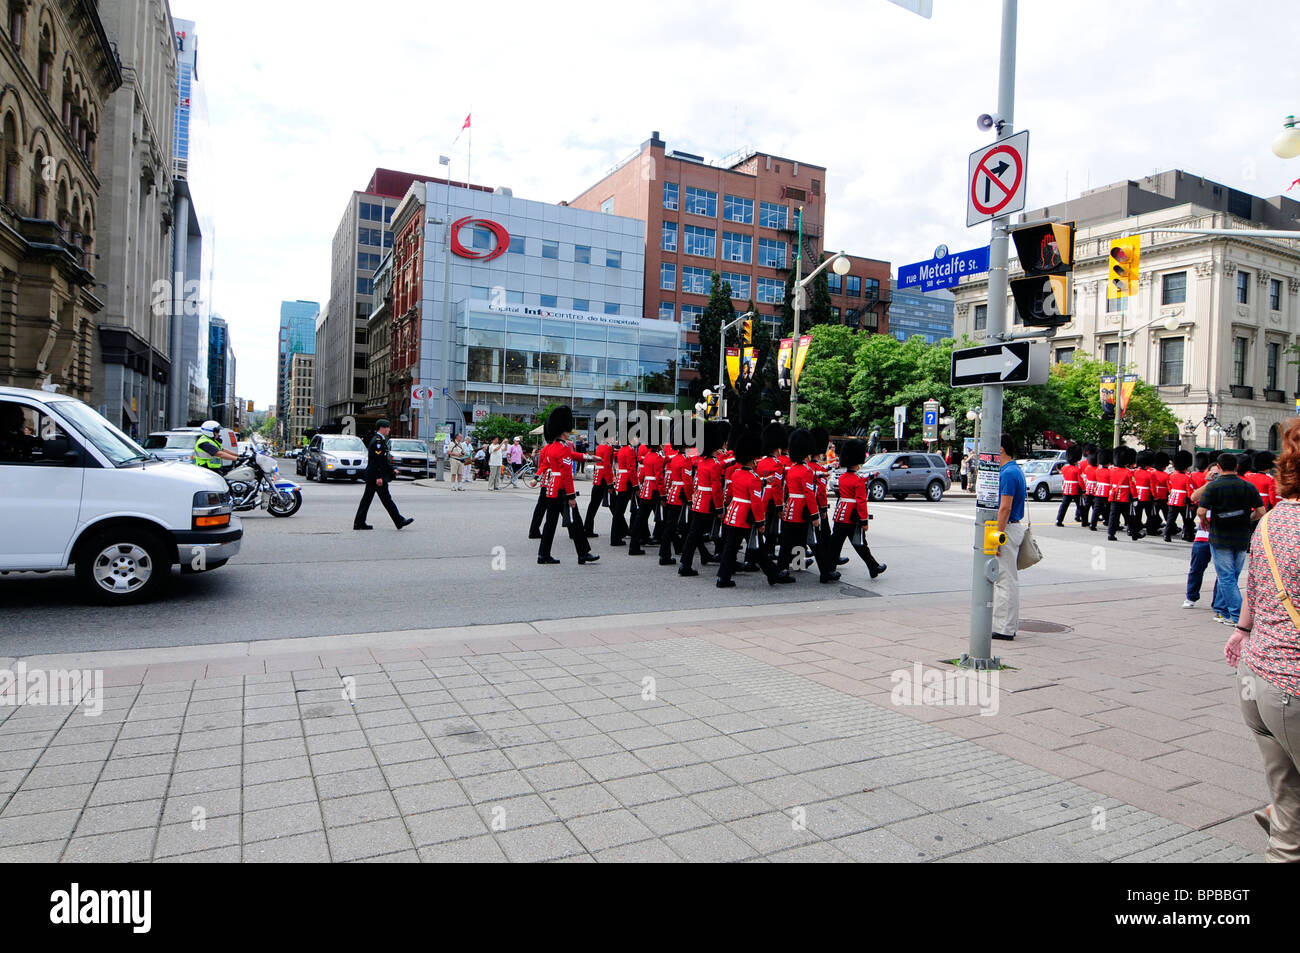 The governor general s foot guards - Regiment Of The Governor General S Foot Guards Marching To Parliament Hill Ottawa For Changing The Guard Ceremony